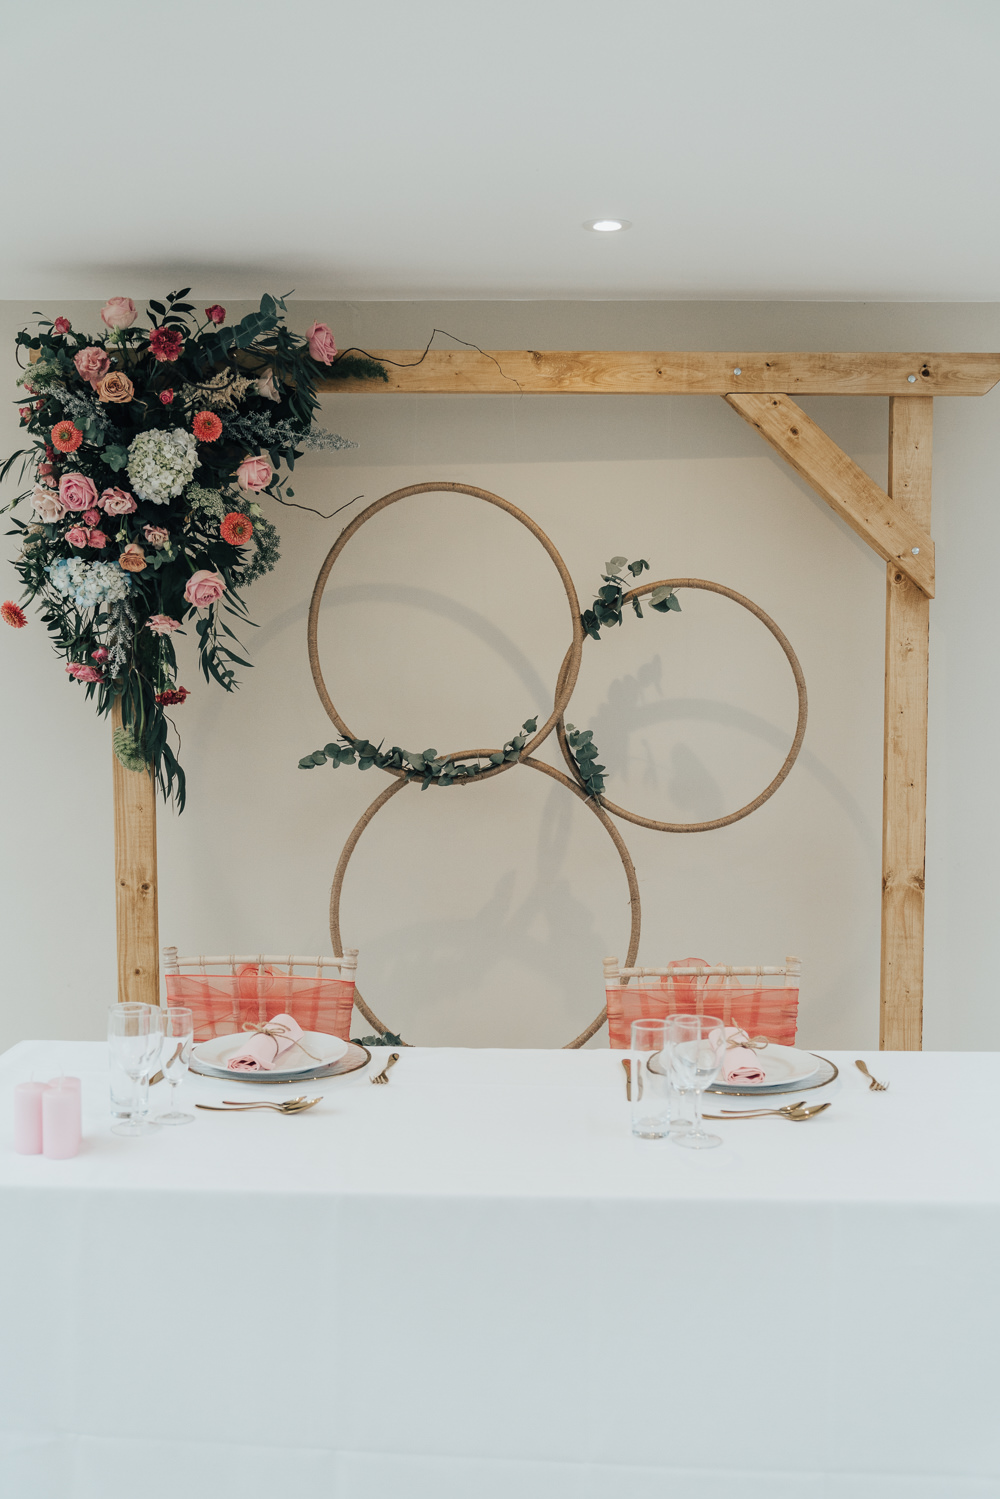 Top Table Backdrop Flowers Floral Hoop Wedding Ideas Rebecca Carpenter Photography